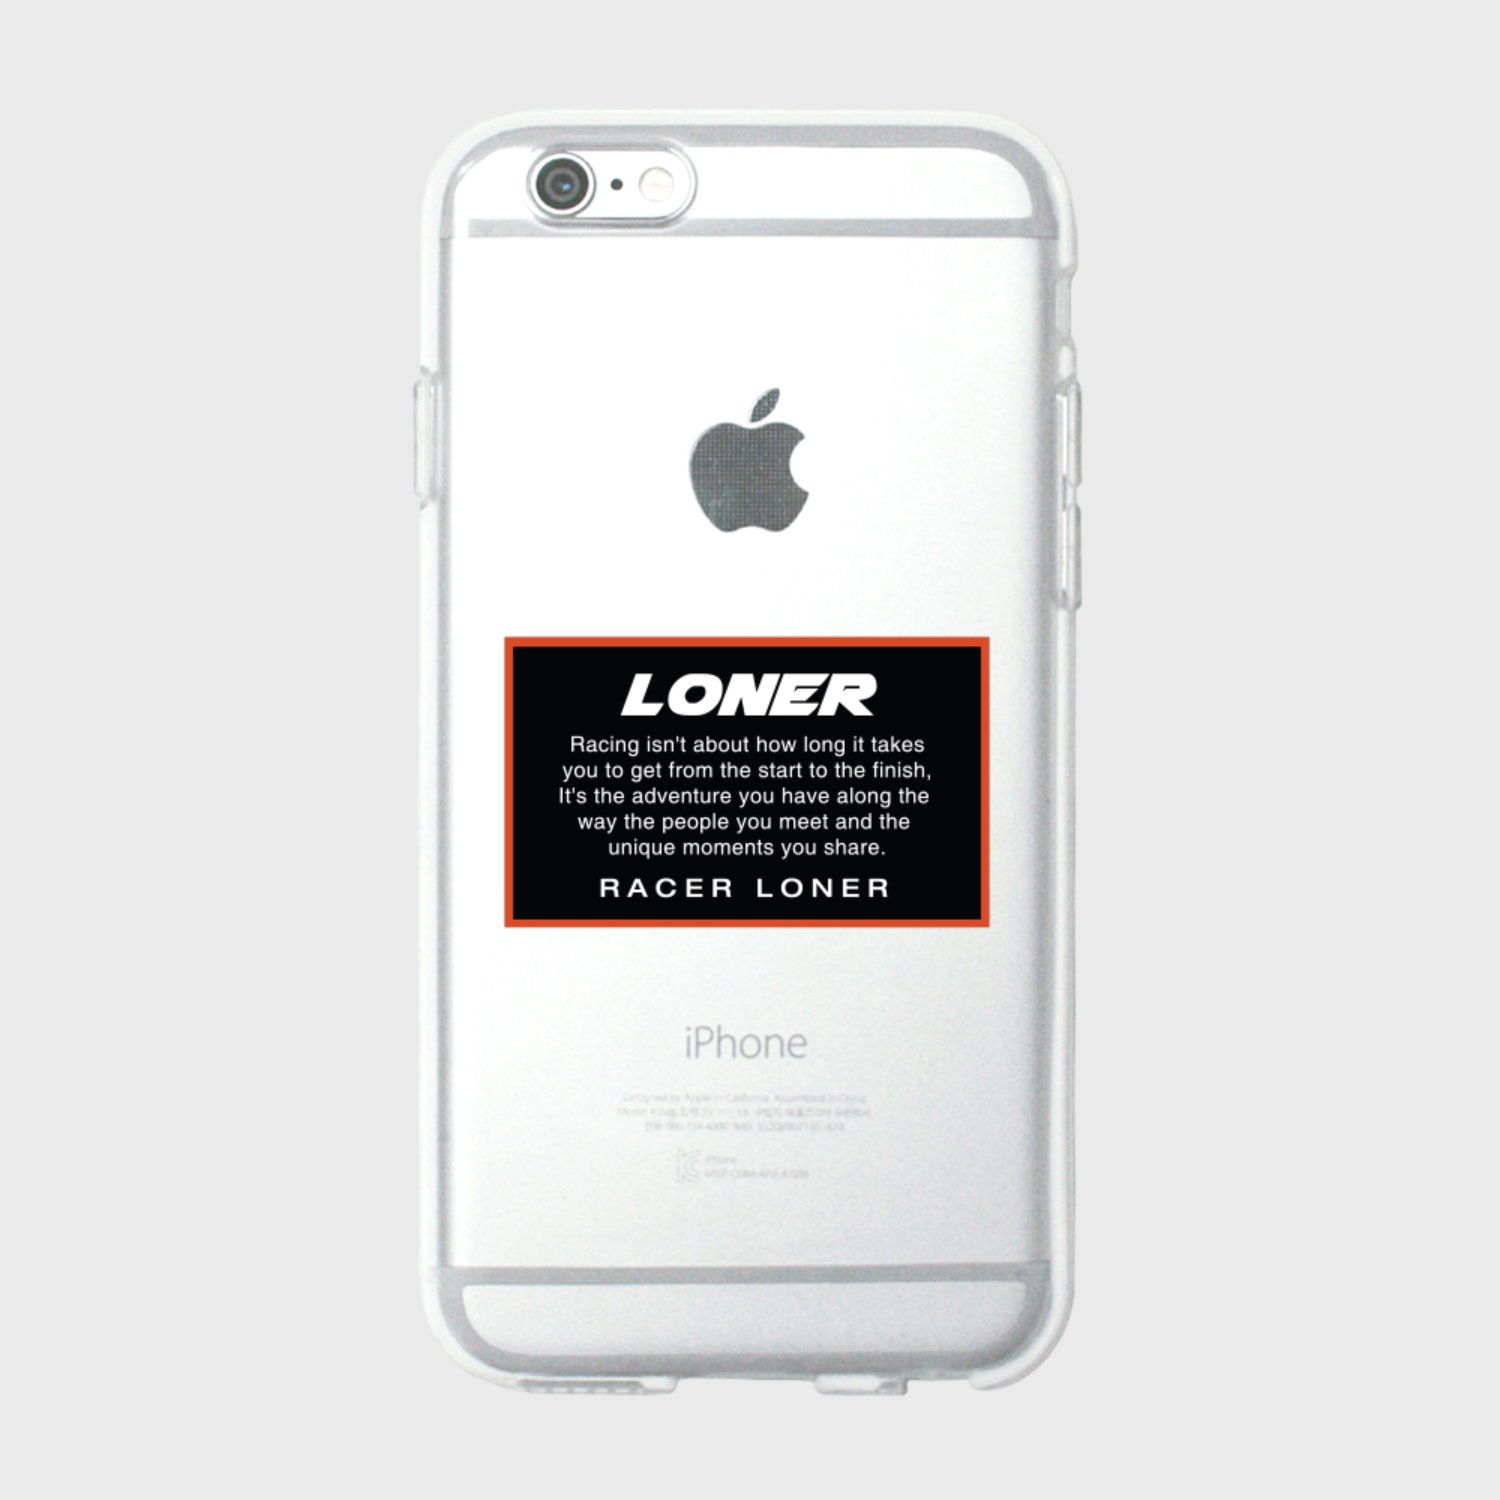 Racer loner-black(jelly case) (기간한정 09.11 - 09.17)